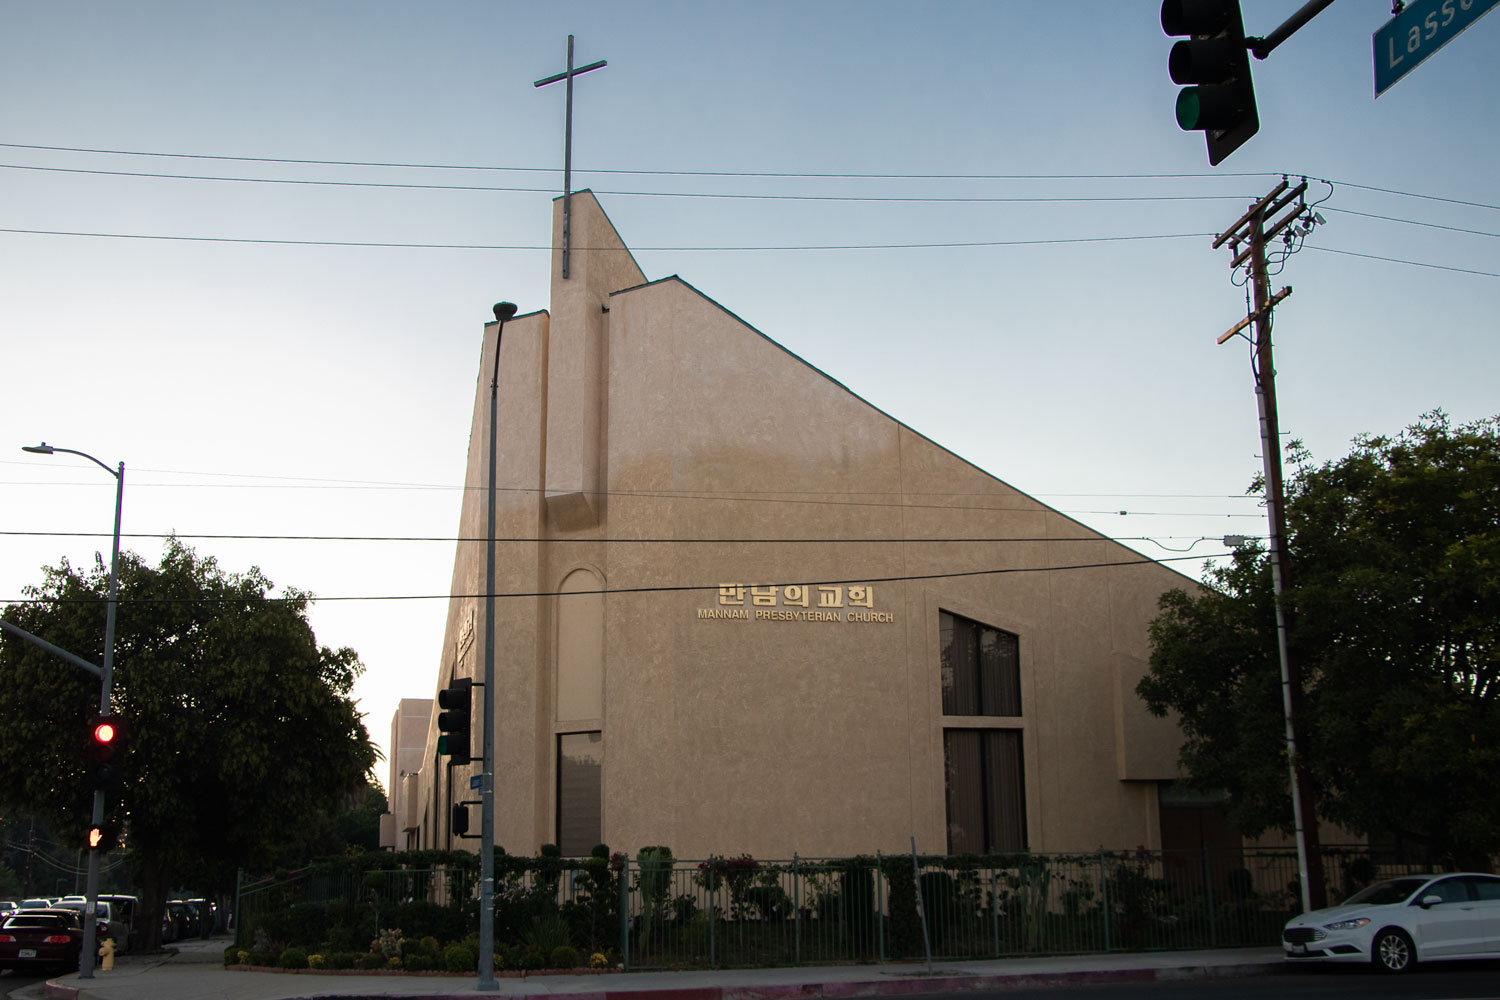 Mannam Presbyterian Church was built in 1999 under Pastor Yong-Hwan Cho on the corner or Lassen Street and Lindley Avenue. It offers sermons in Korean and ministries in both Korean and English. Photo credit: Elaine Sanders